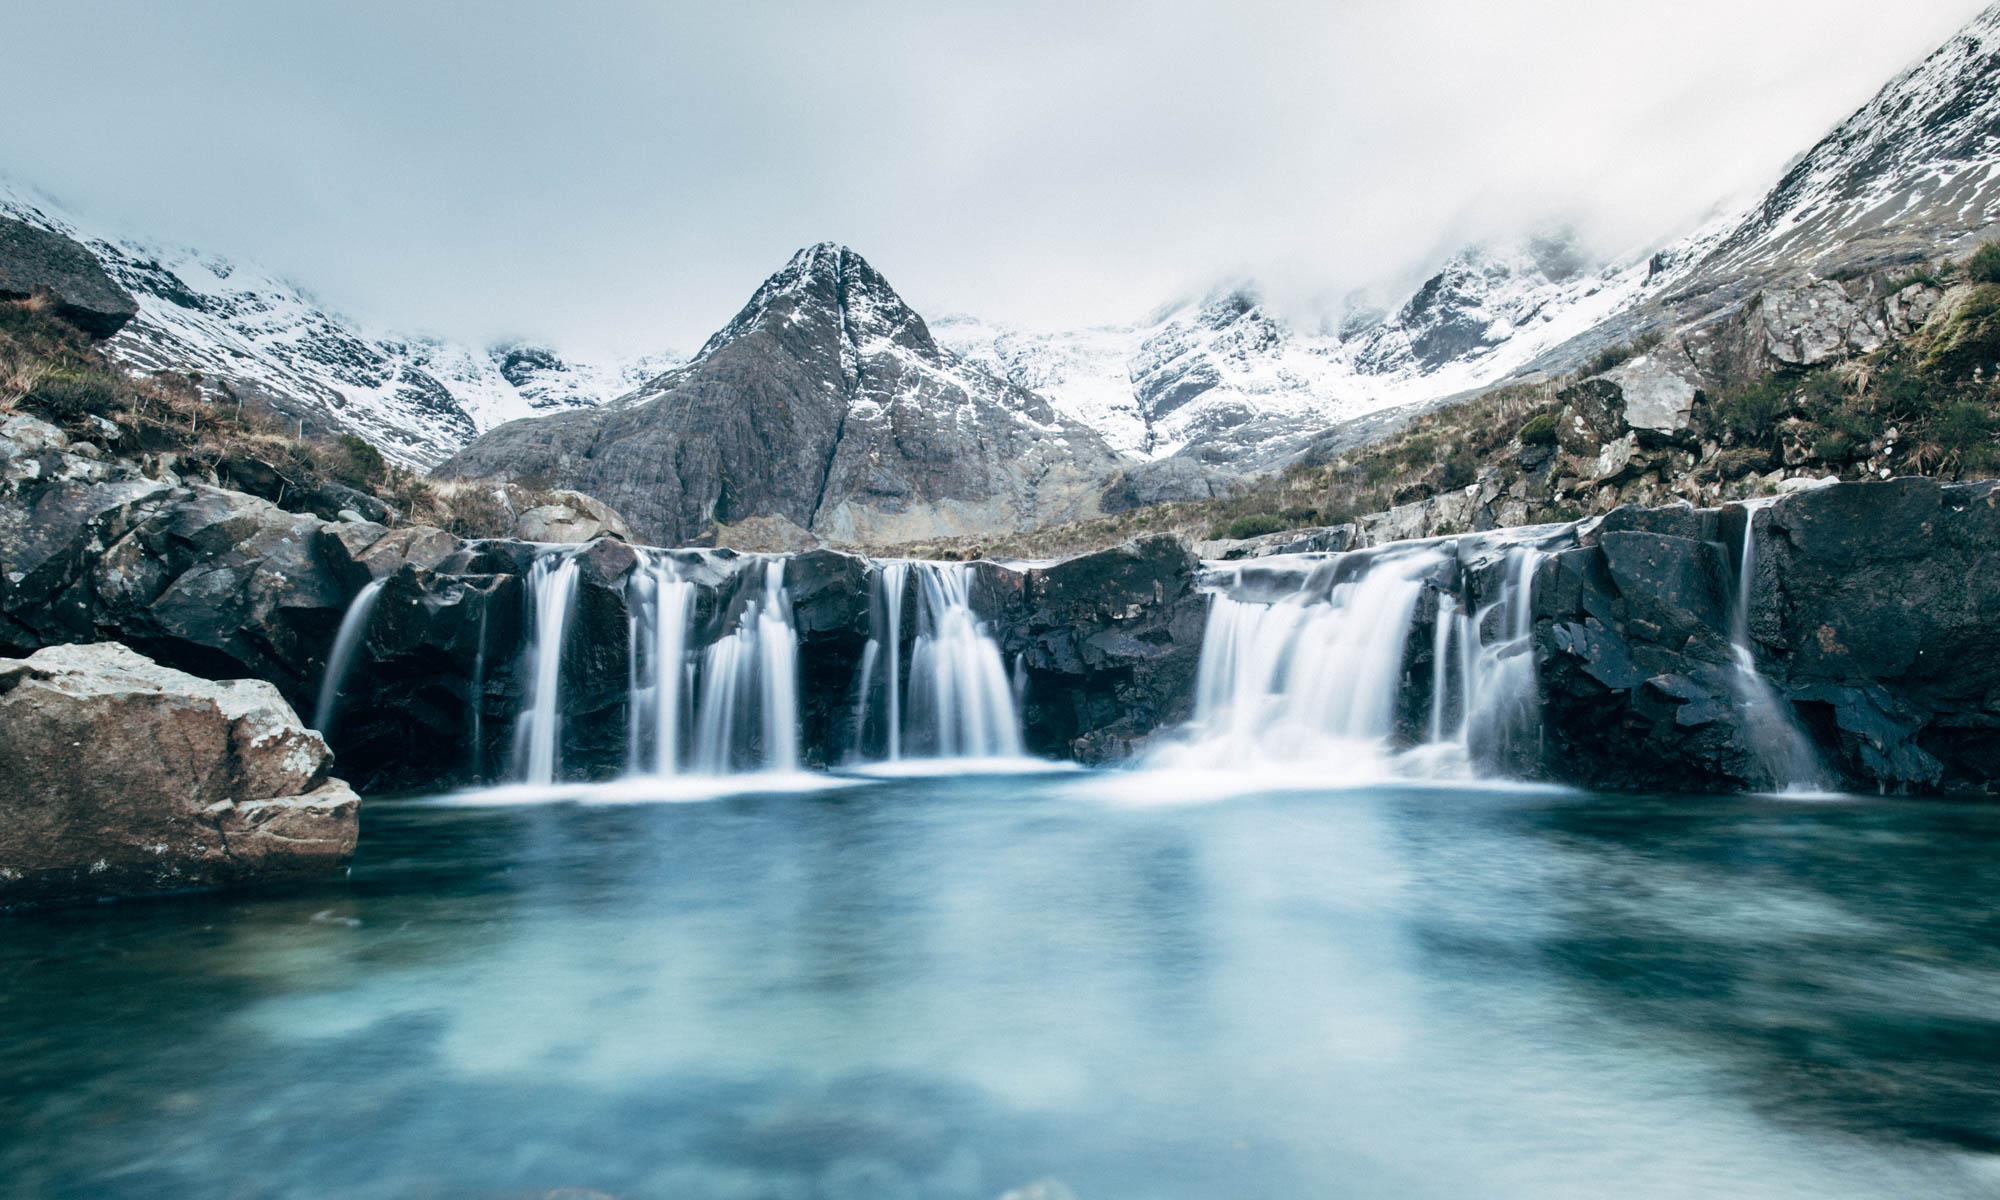 Snow melt trickles down into the blue-tinged 'Fairy Pools' on the Isle of Skye